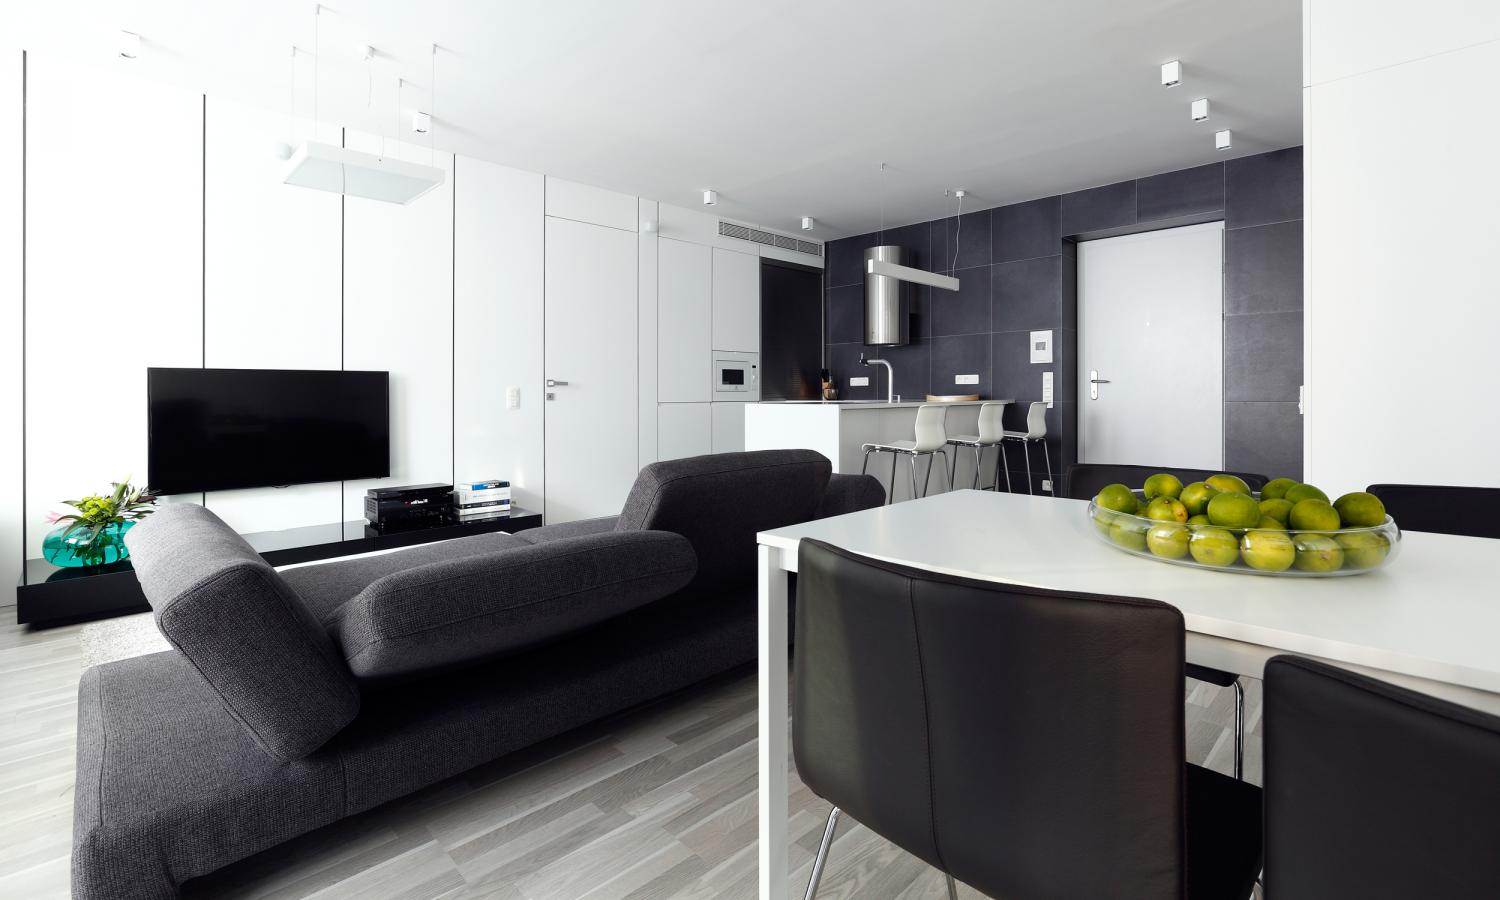 Apartment with two separate residential units bratislava for Separate kitchen units